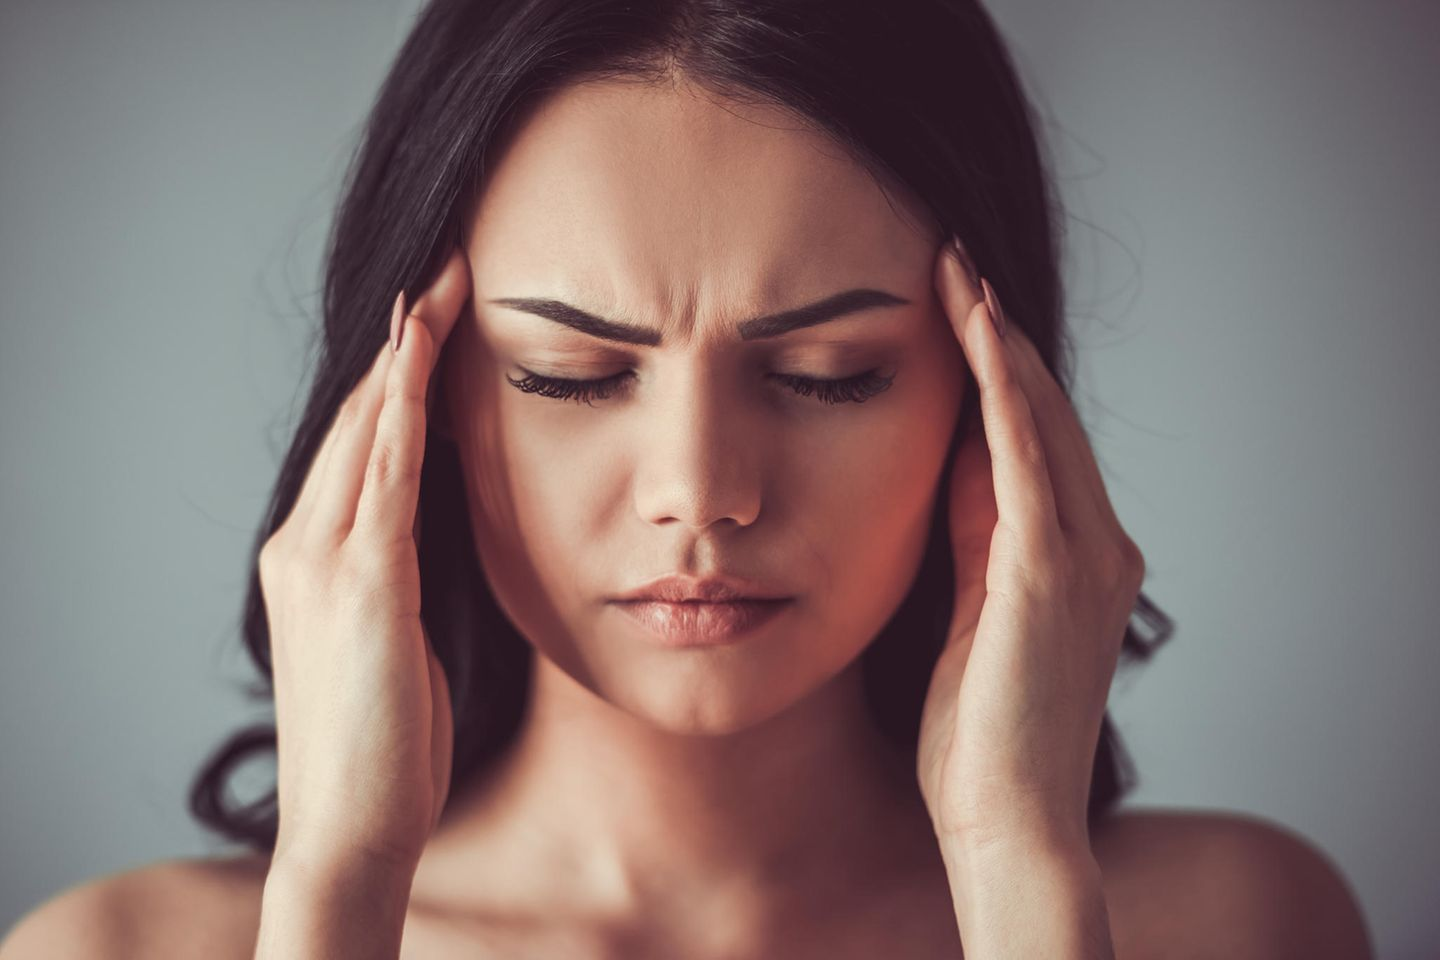 Headache: Woman with a contorted face in pain holds her hands to her forehead